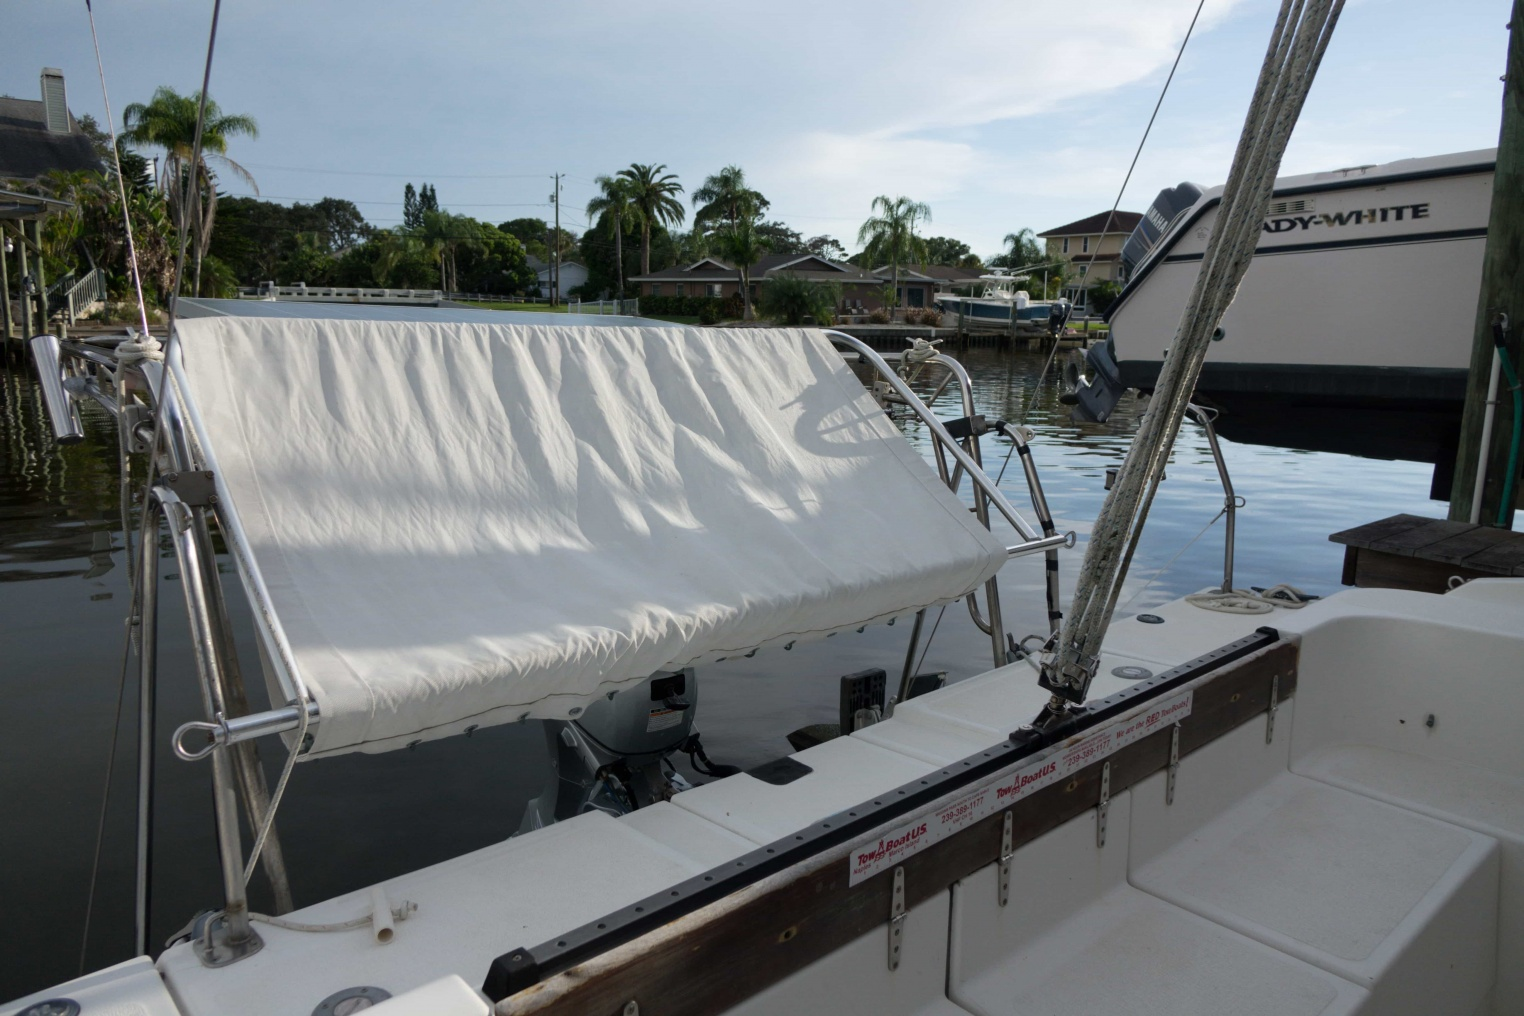 Click image for larger version  Name:Gemini Hammock Starboard View.jpg Views:472 Size:407.1 KB ID:176080